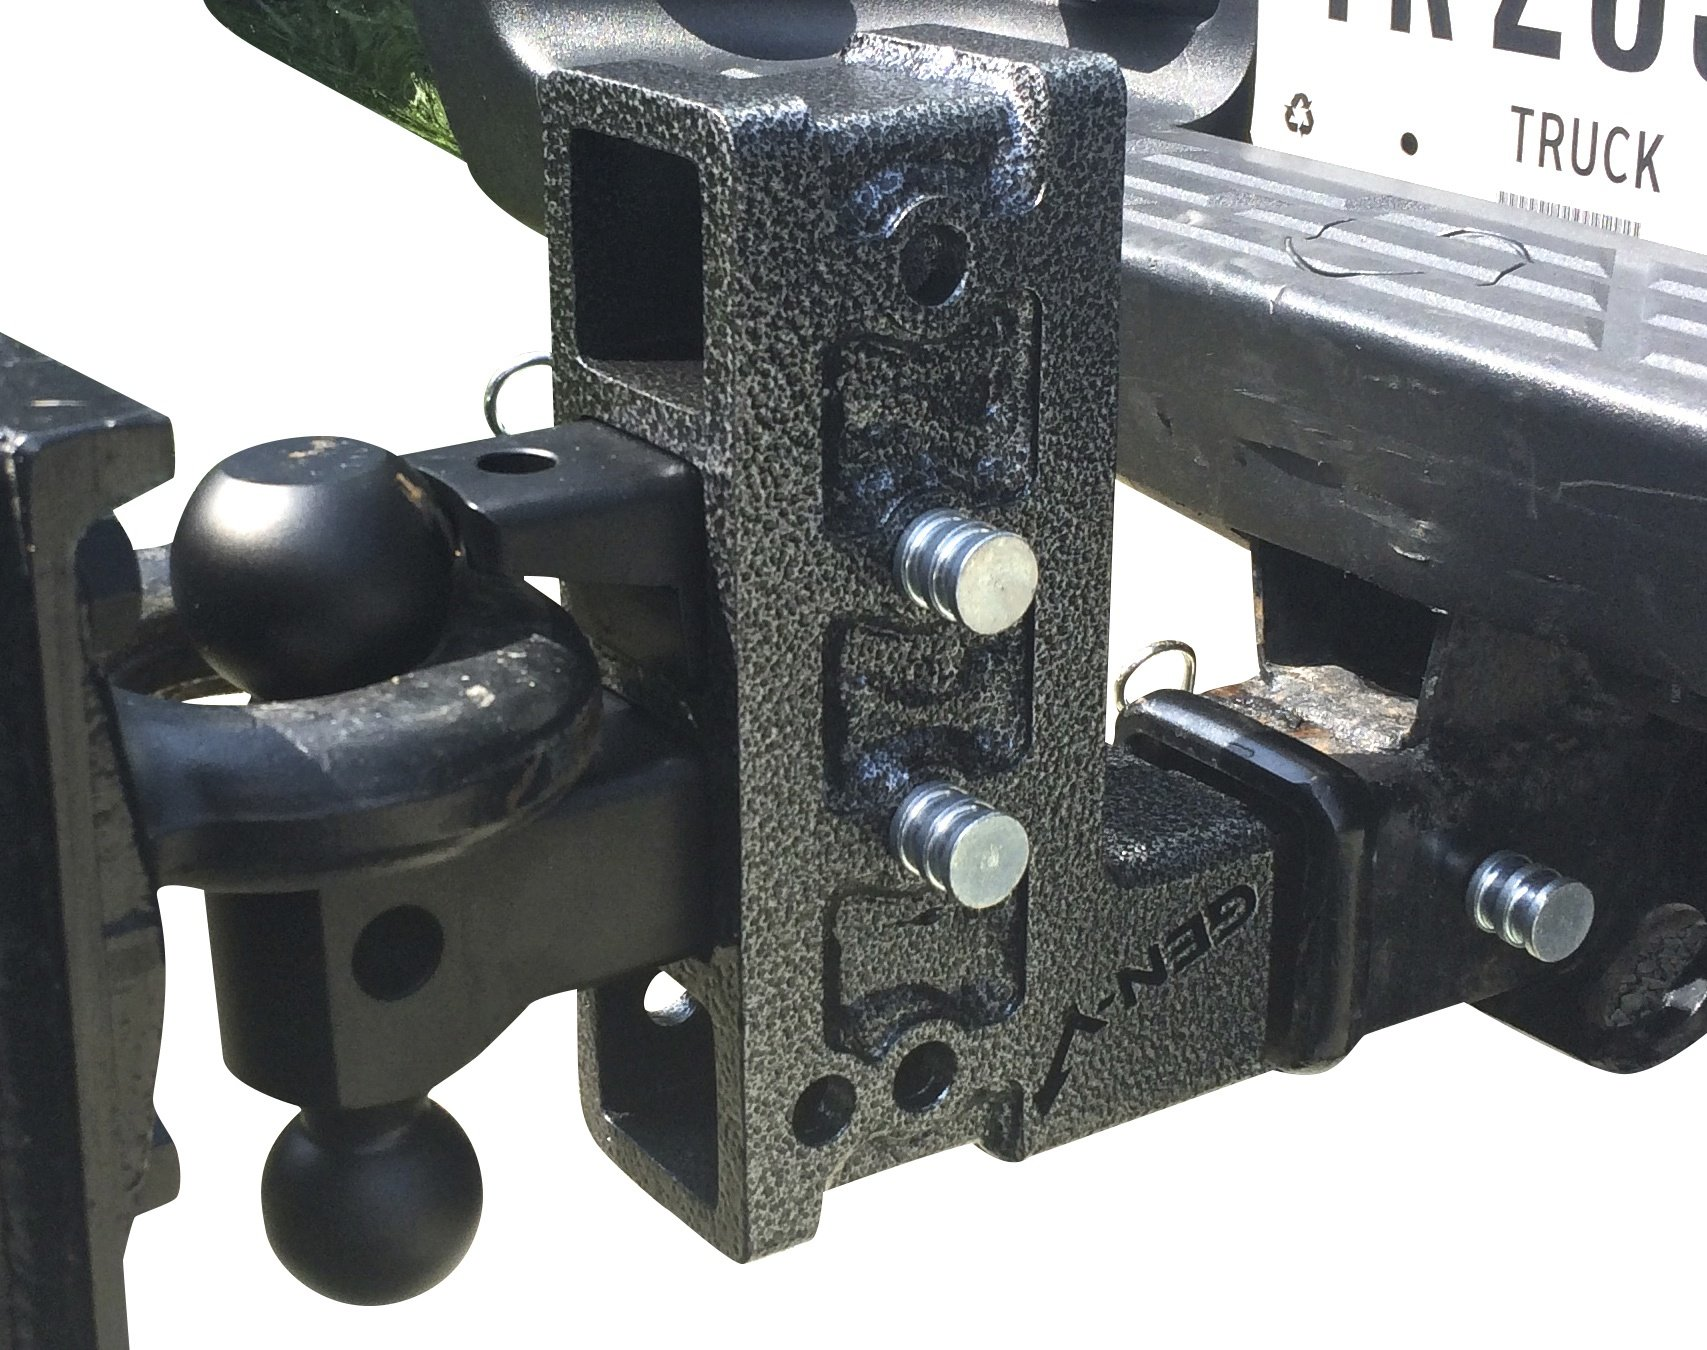 GEN-Y Hitch GH-224 Adjustable Drop Hitch with Ball Mount and Pintle, 5-Inch Drop by Gen•Y